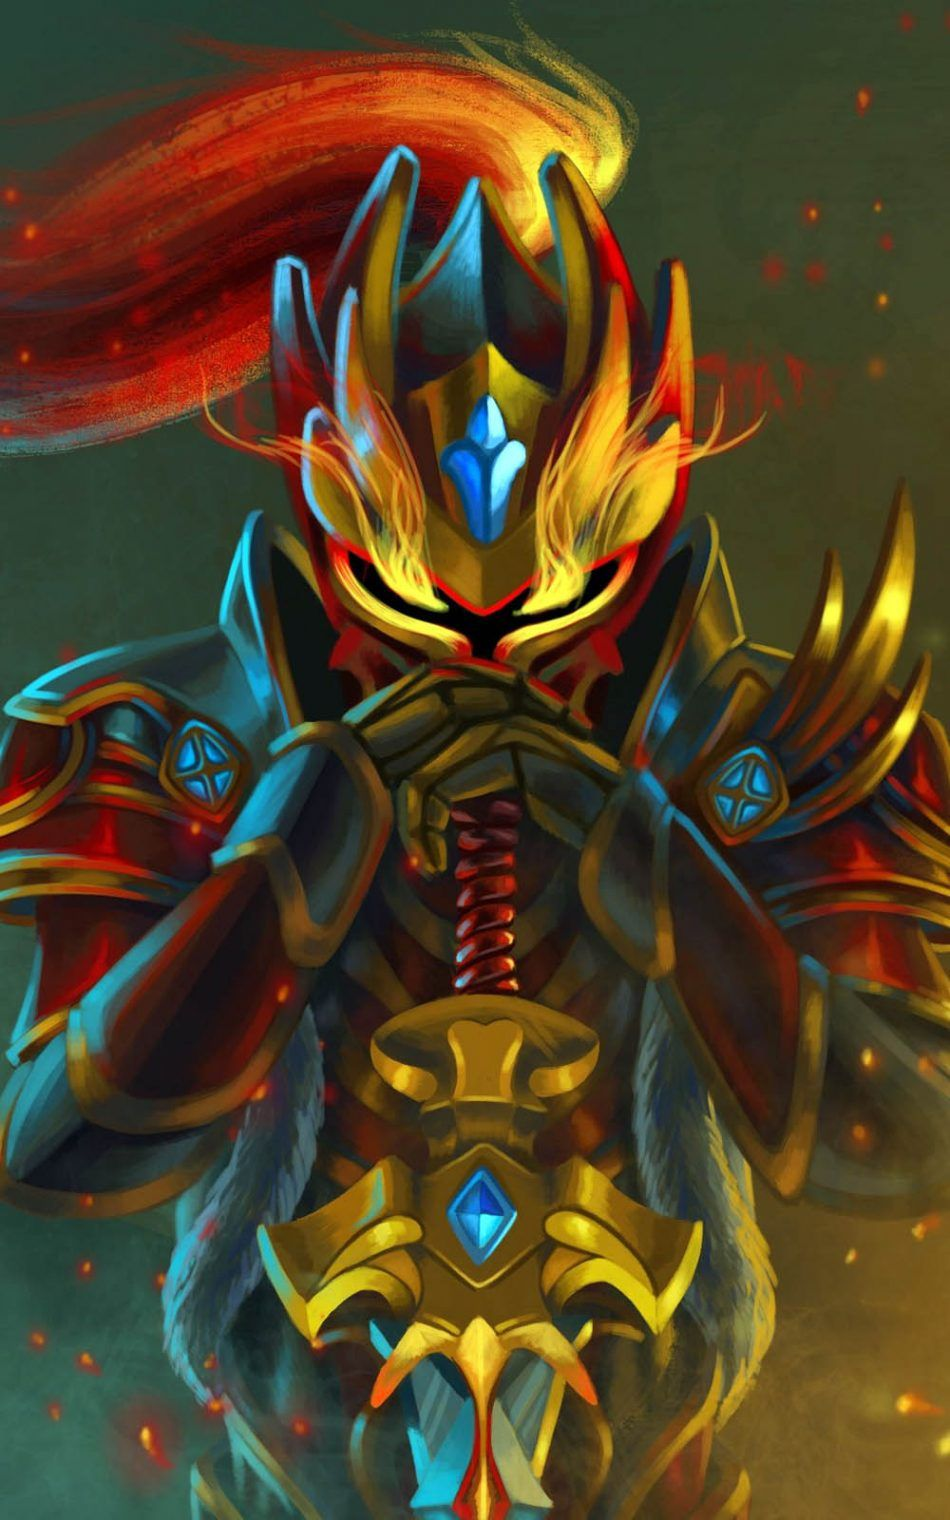 Dragon Knight Dota 2 Dragon Knight Dota 2 Wallpapers Hd Dota 2 Wallpaper